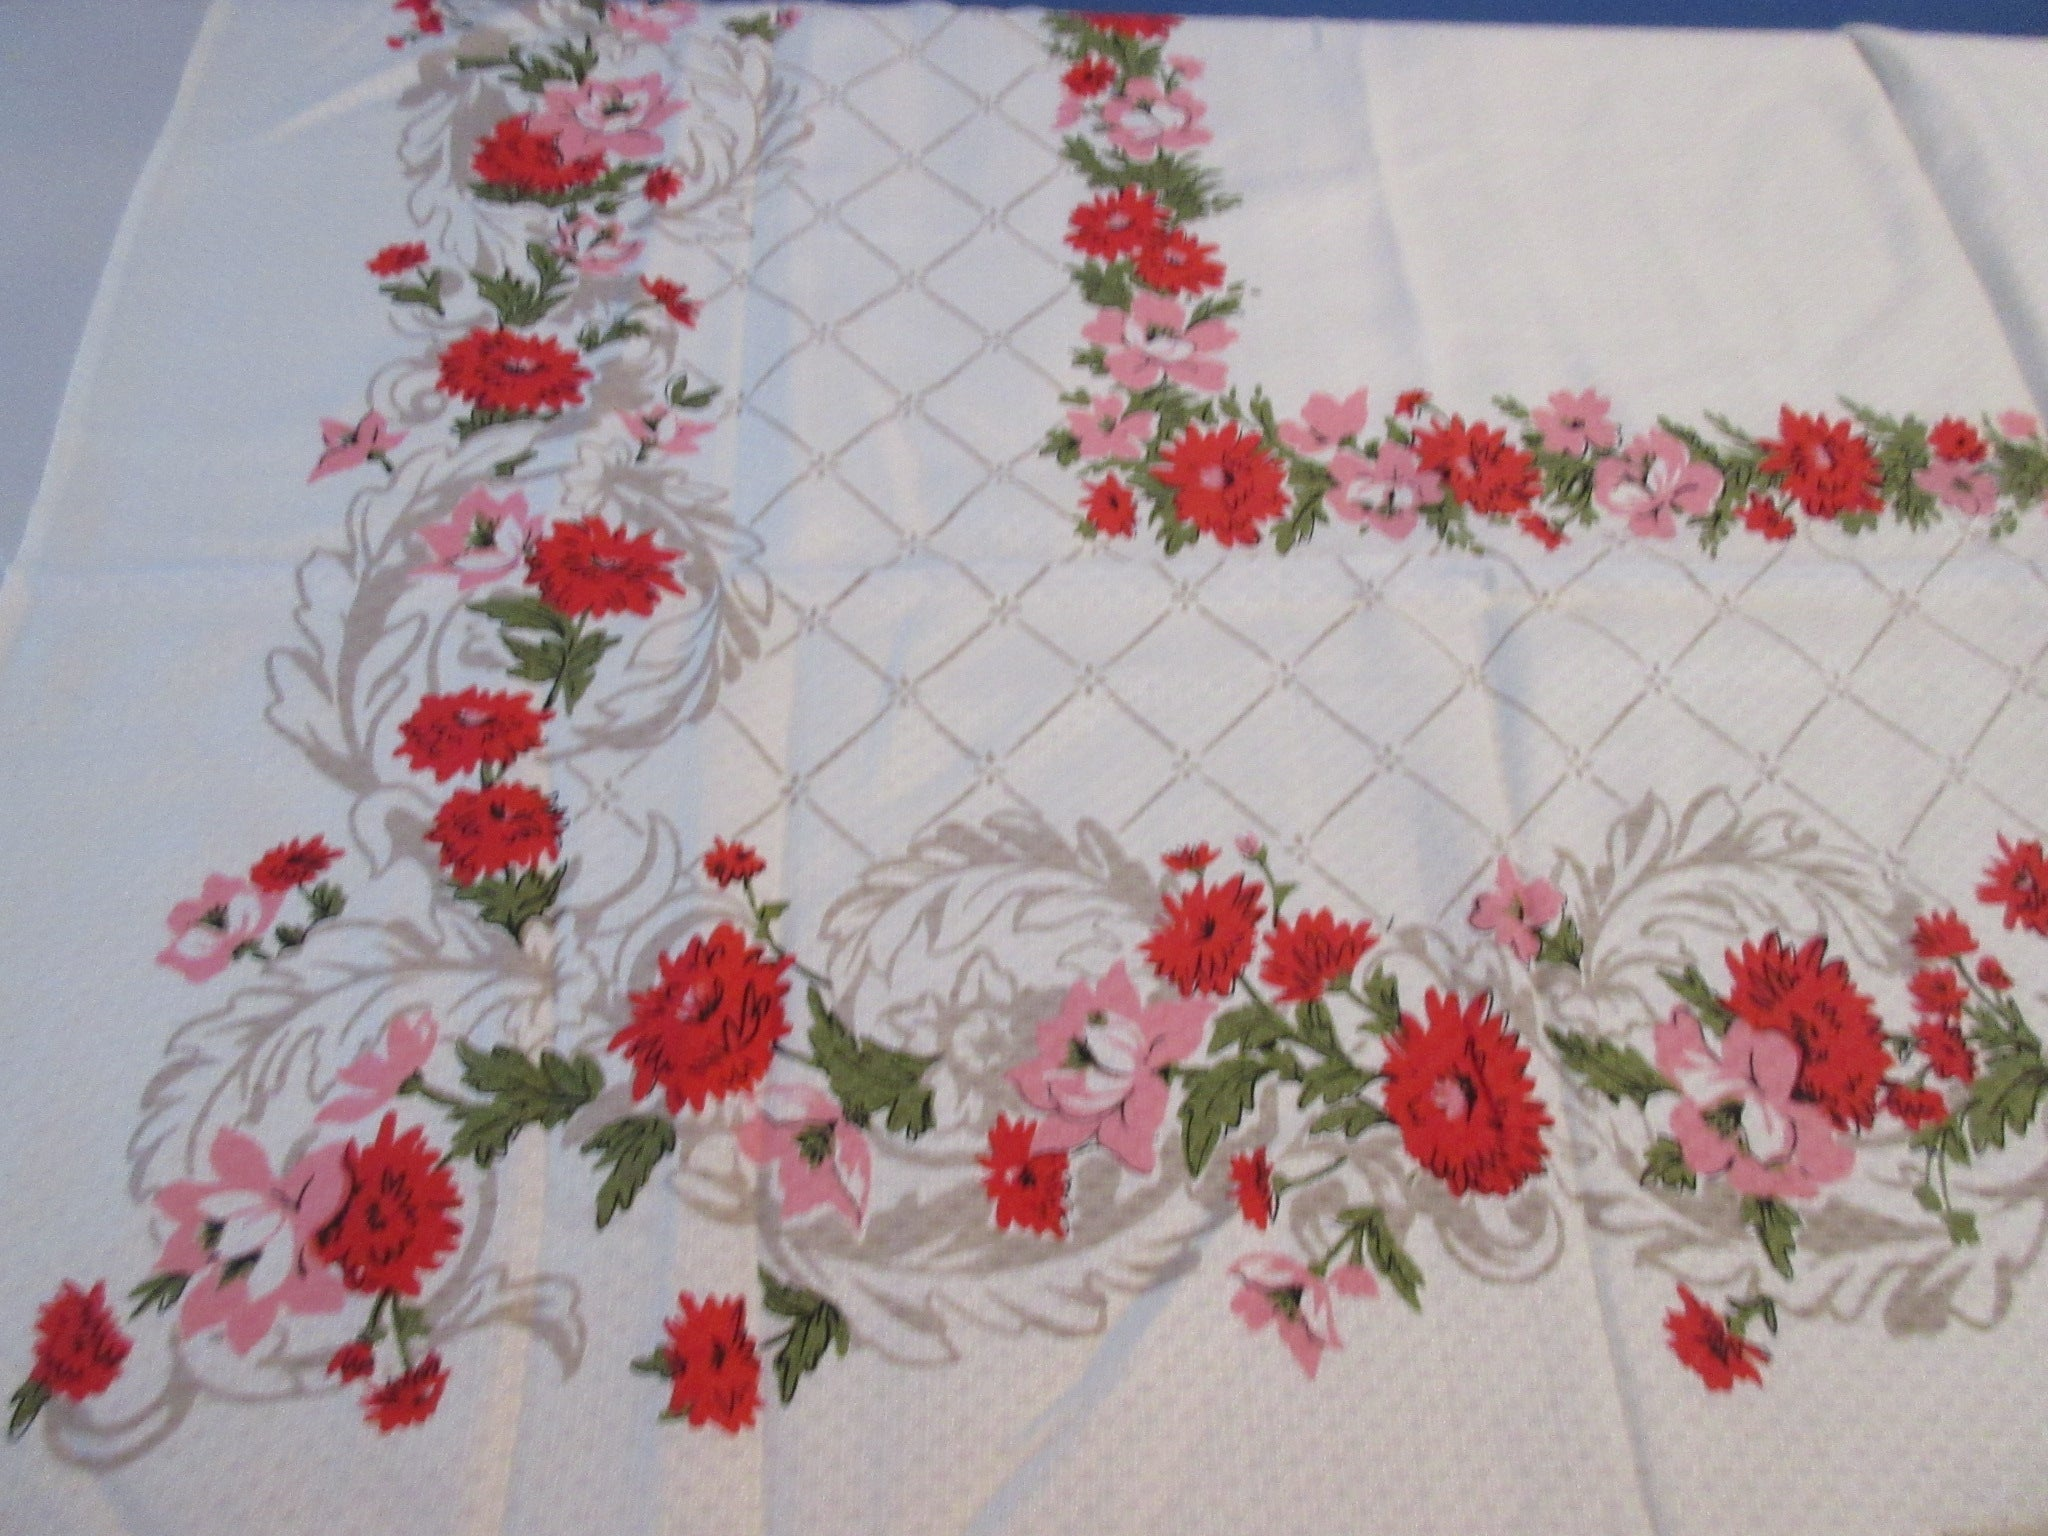 Pink Red Chrysanthemums on Tan Scrolls MWT Floral Vintage Printed Tablecloth (52 X 49)